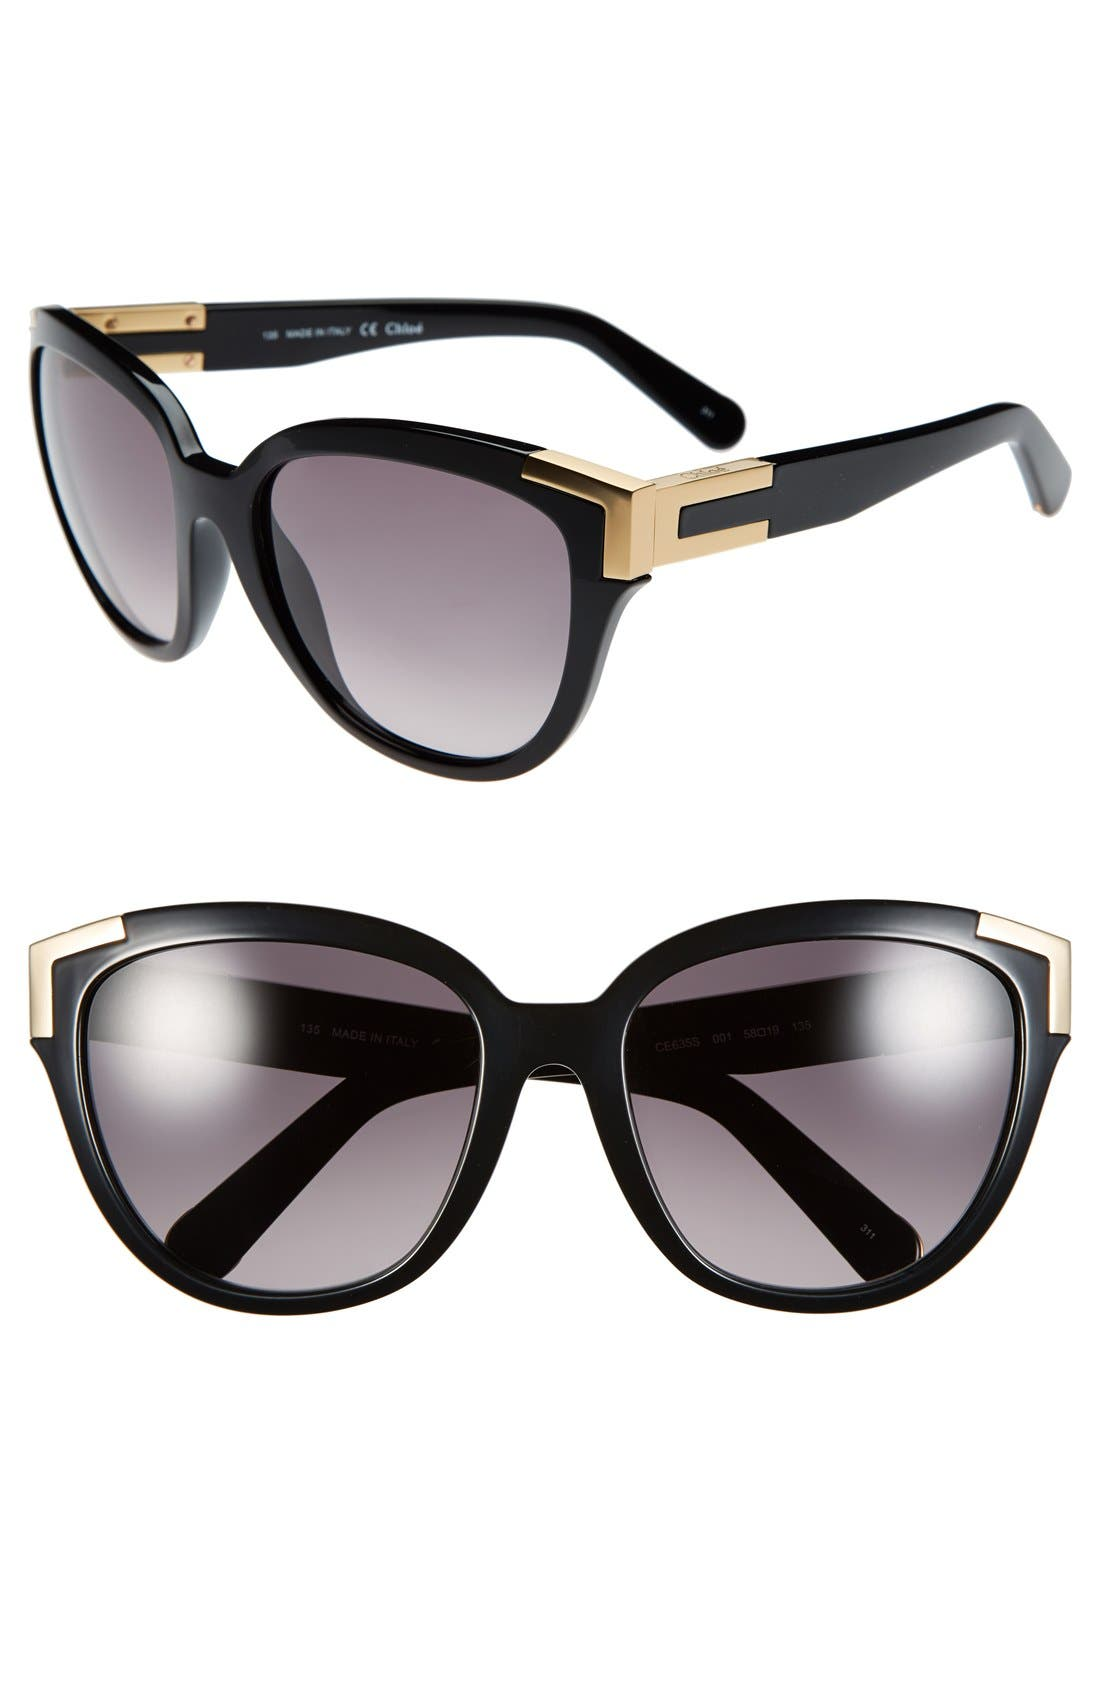 Main Image - Chloé 58mm Sunglasses